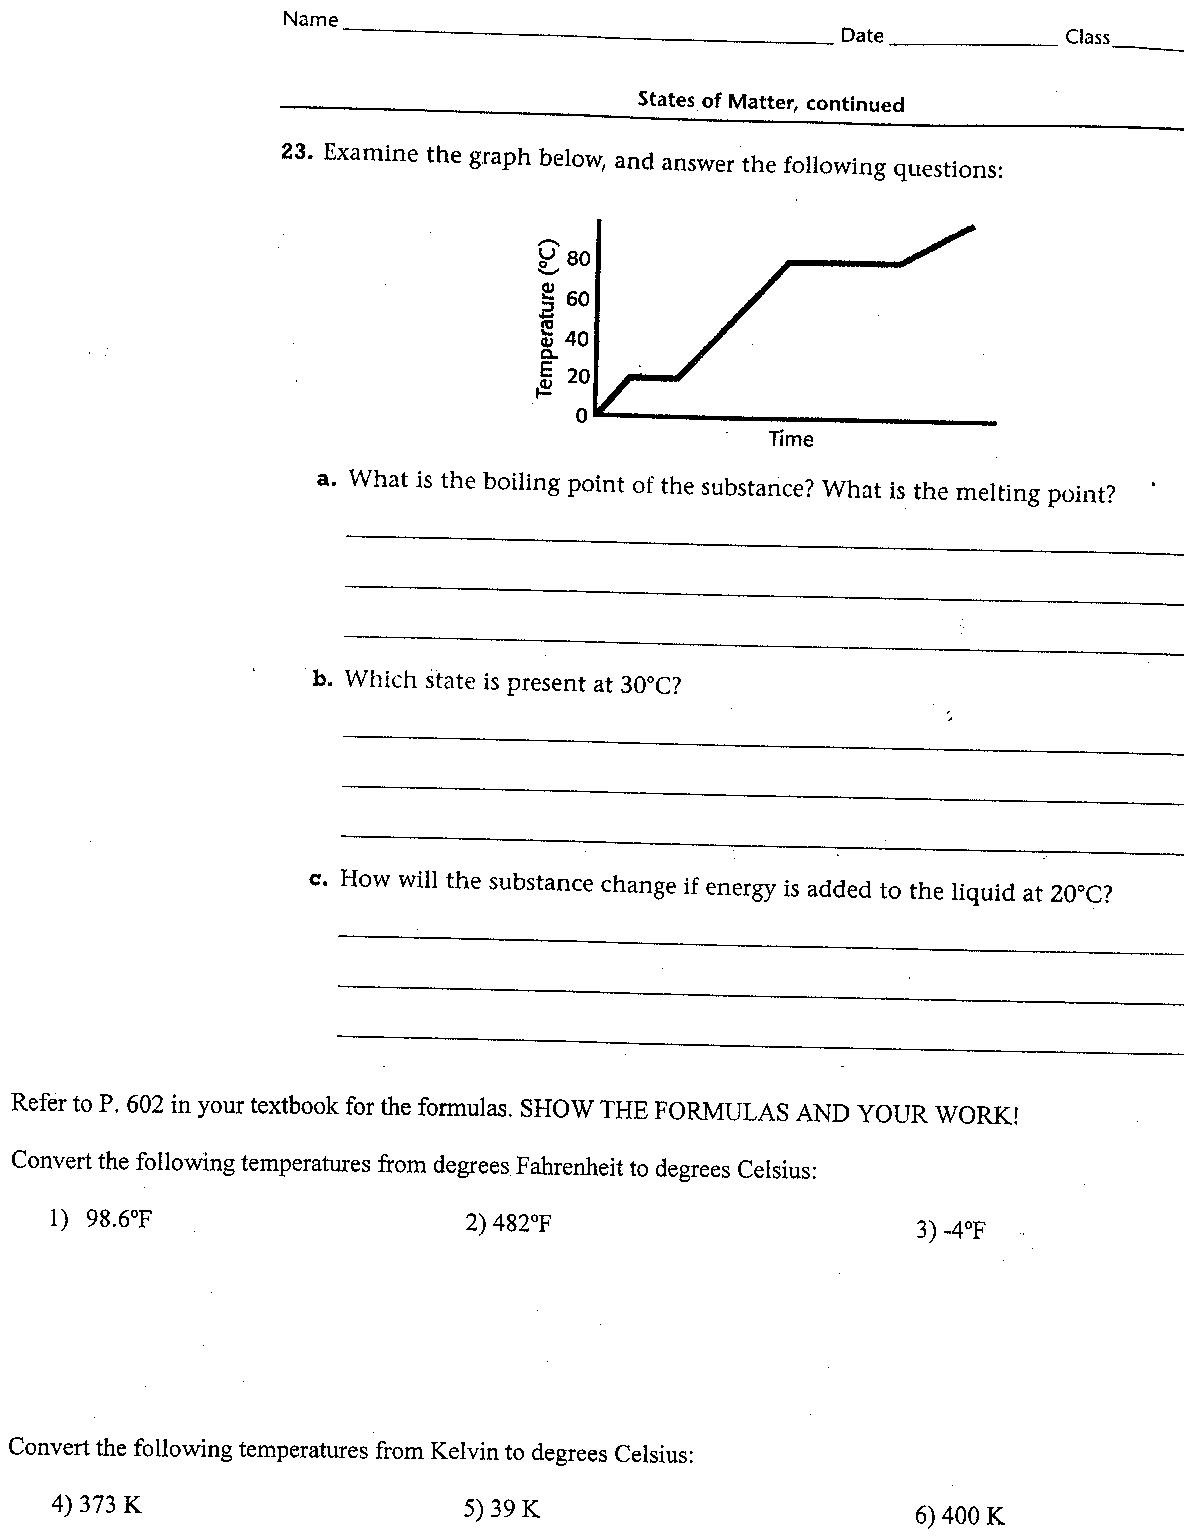 Worksheet Graph and Temp Conversions